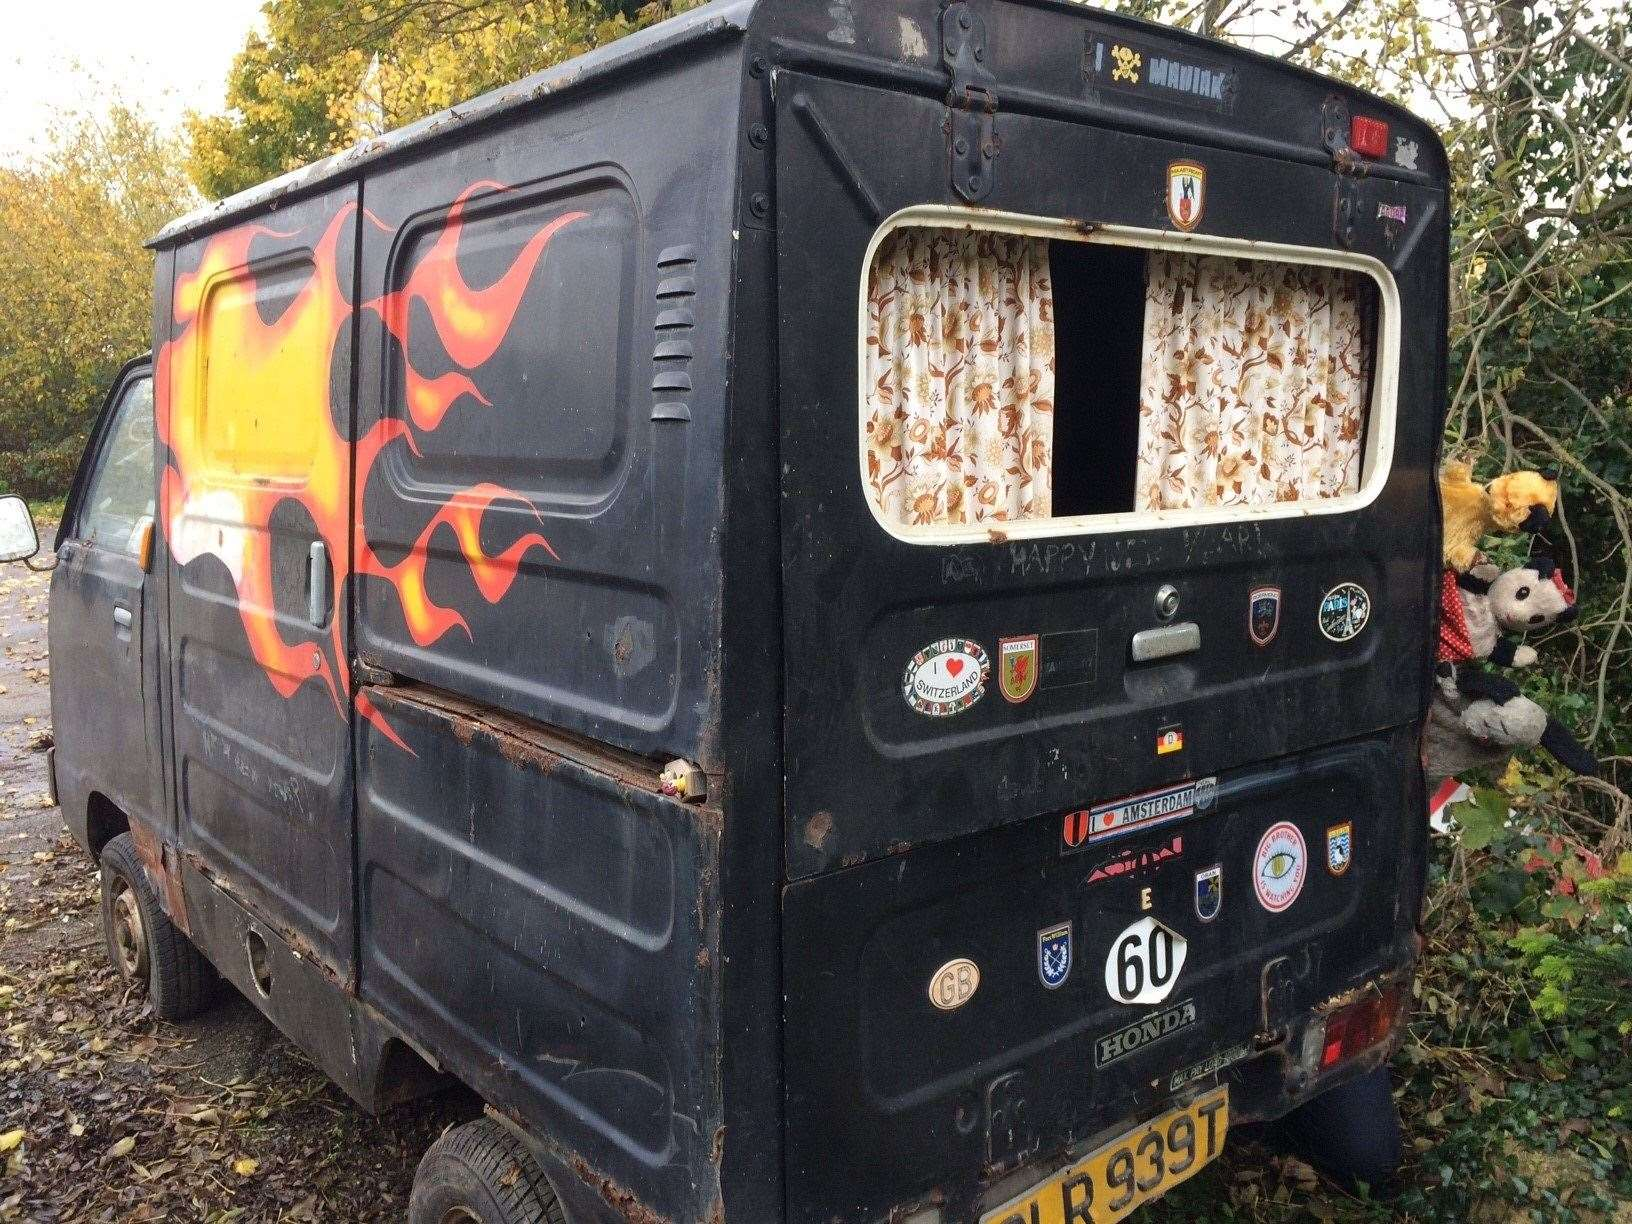 Sooty's TV Mobile van set to go up for auction after Cambridge owner decides to sell (21698938)